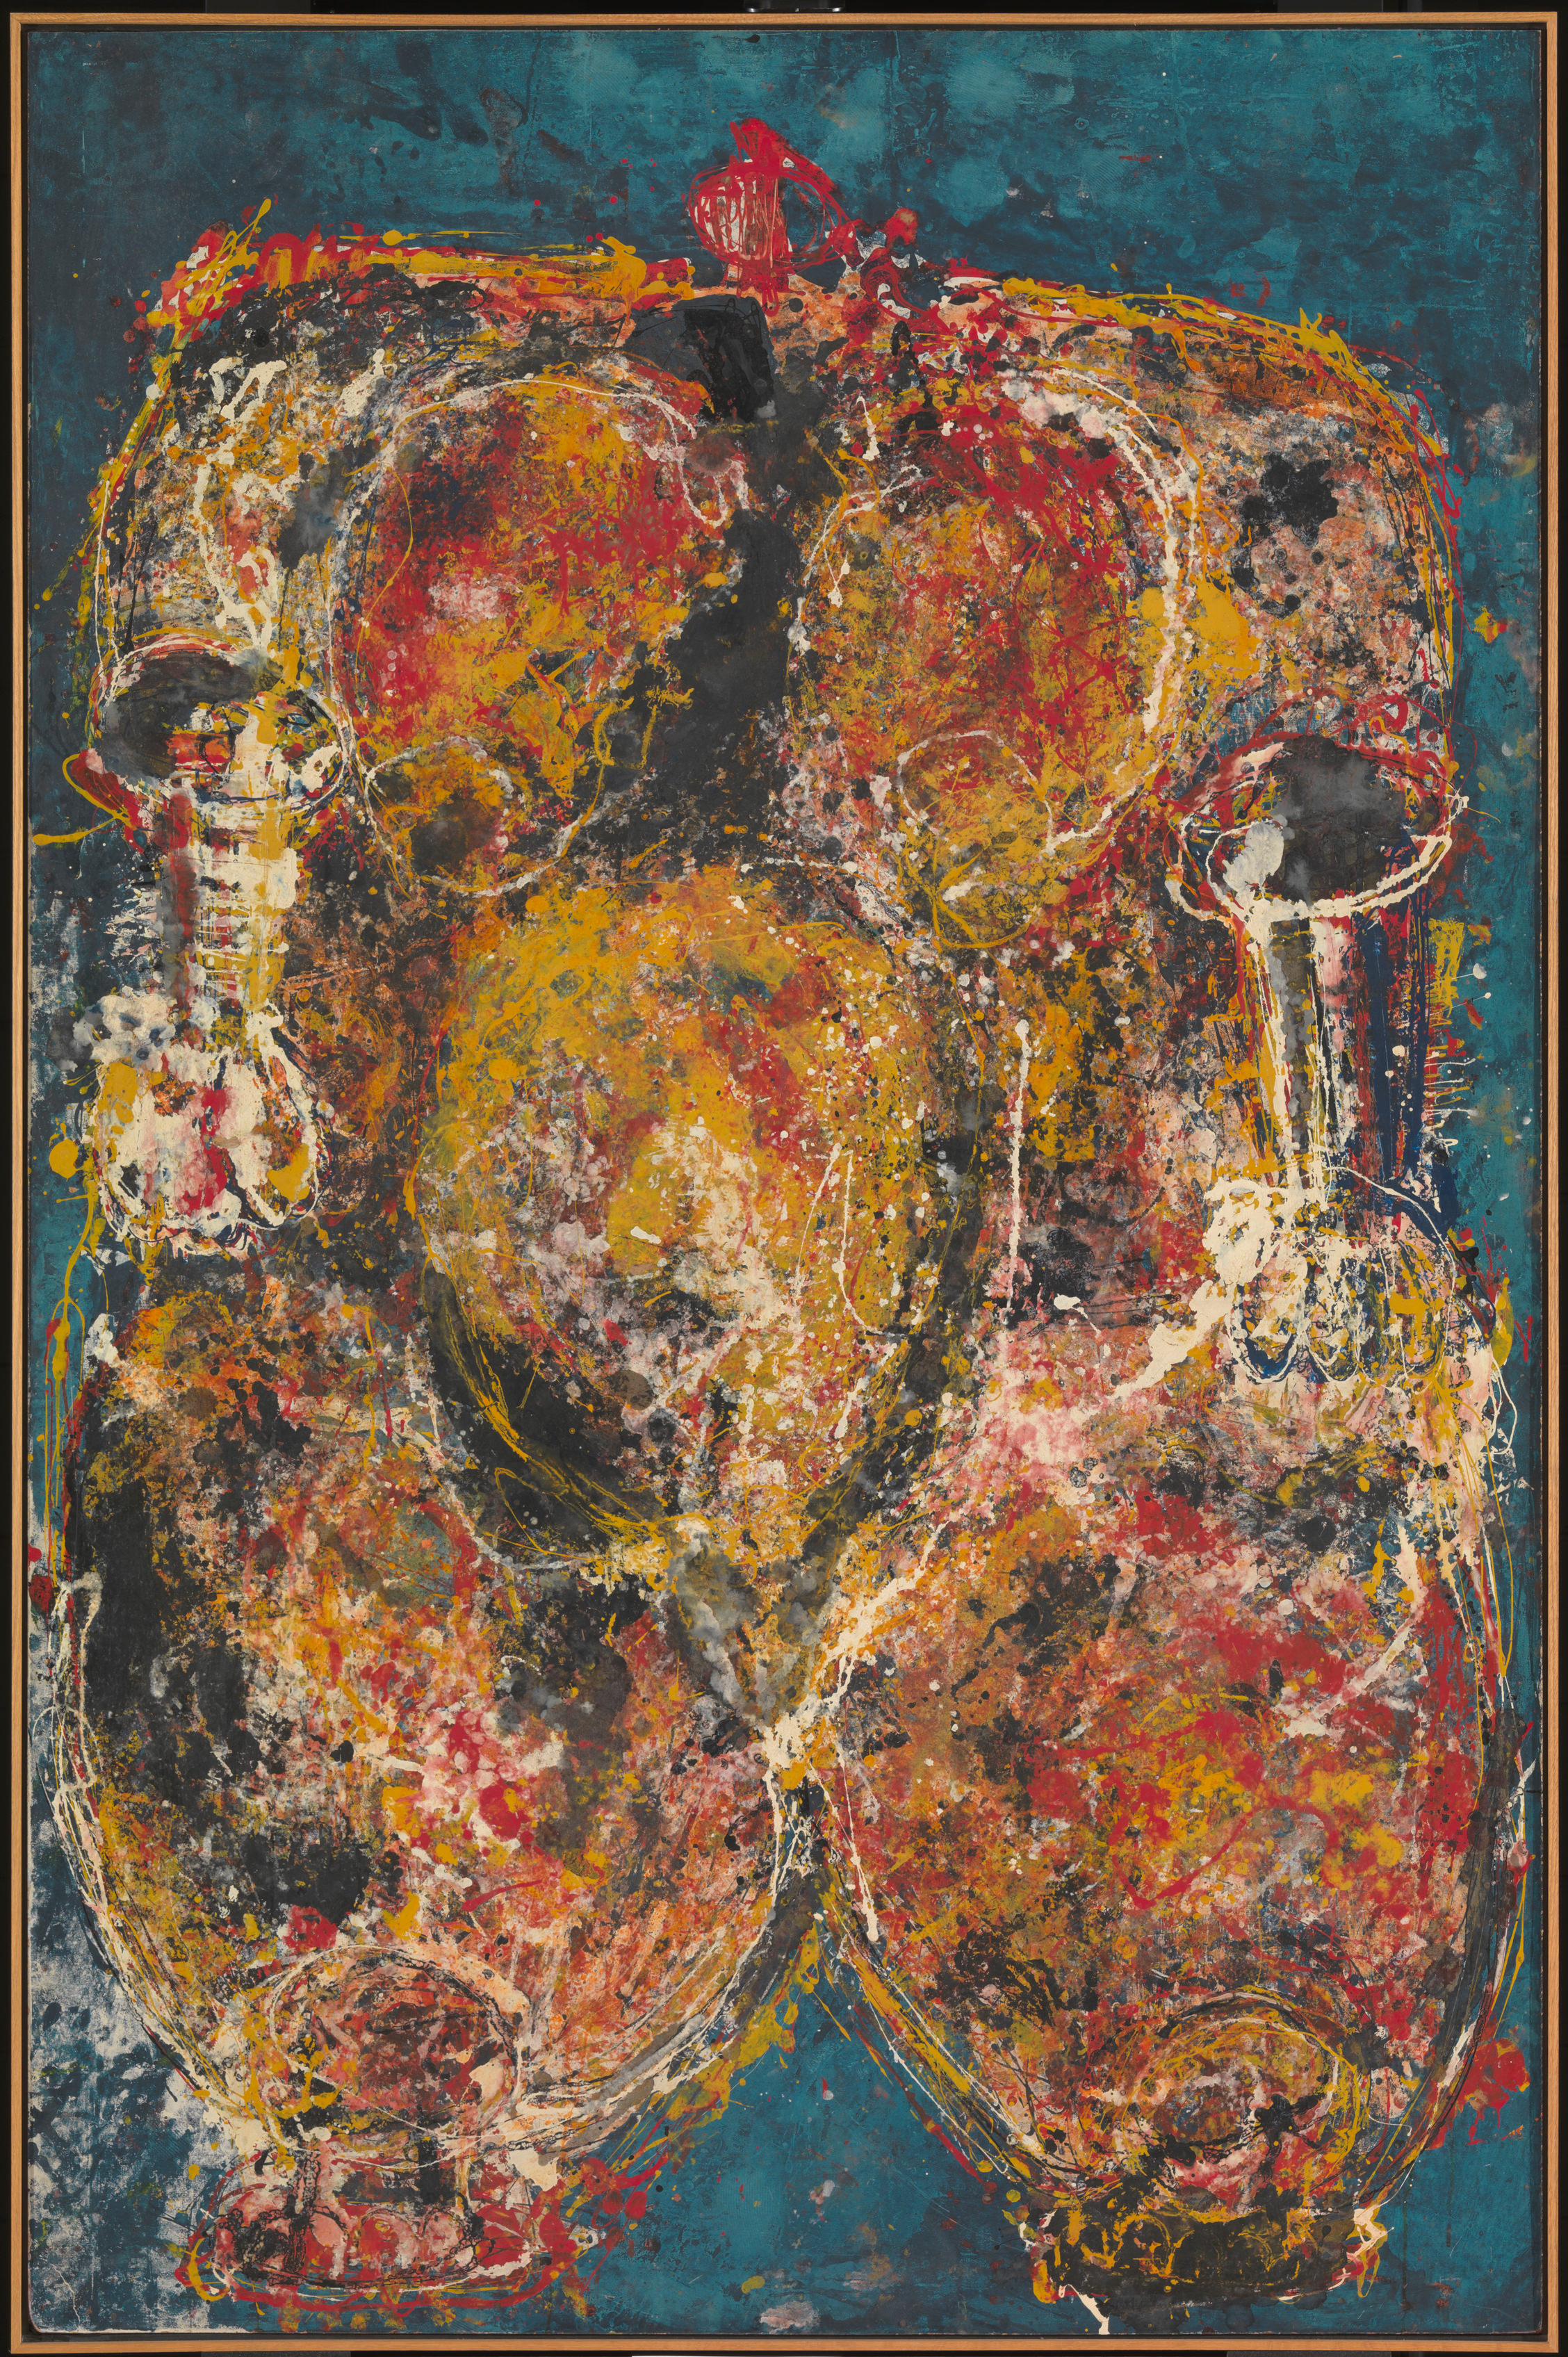 unconfirmed medium (mixed materials on canvas), 231.2 x 152.2 cm. Tate, London